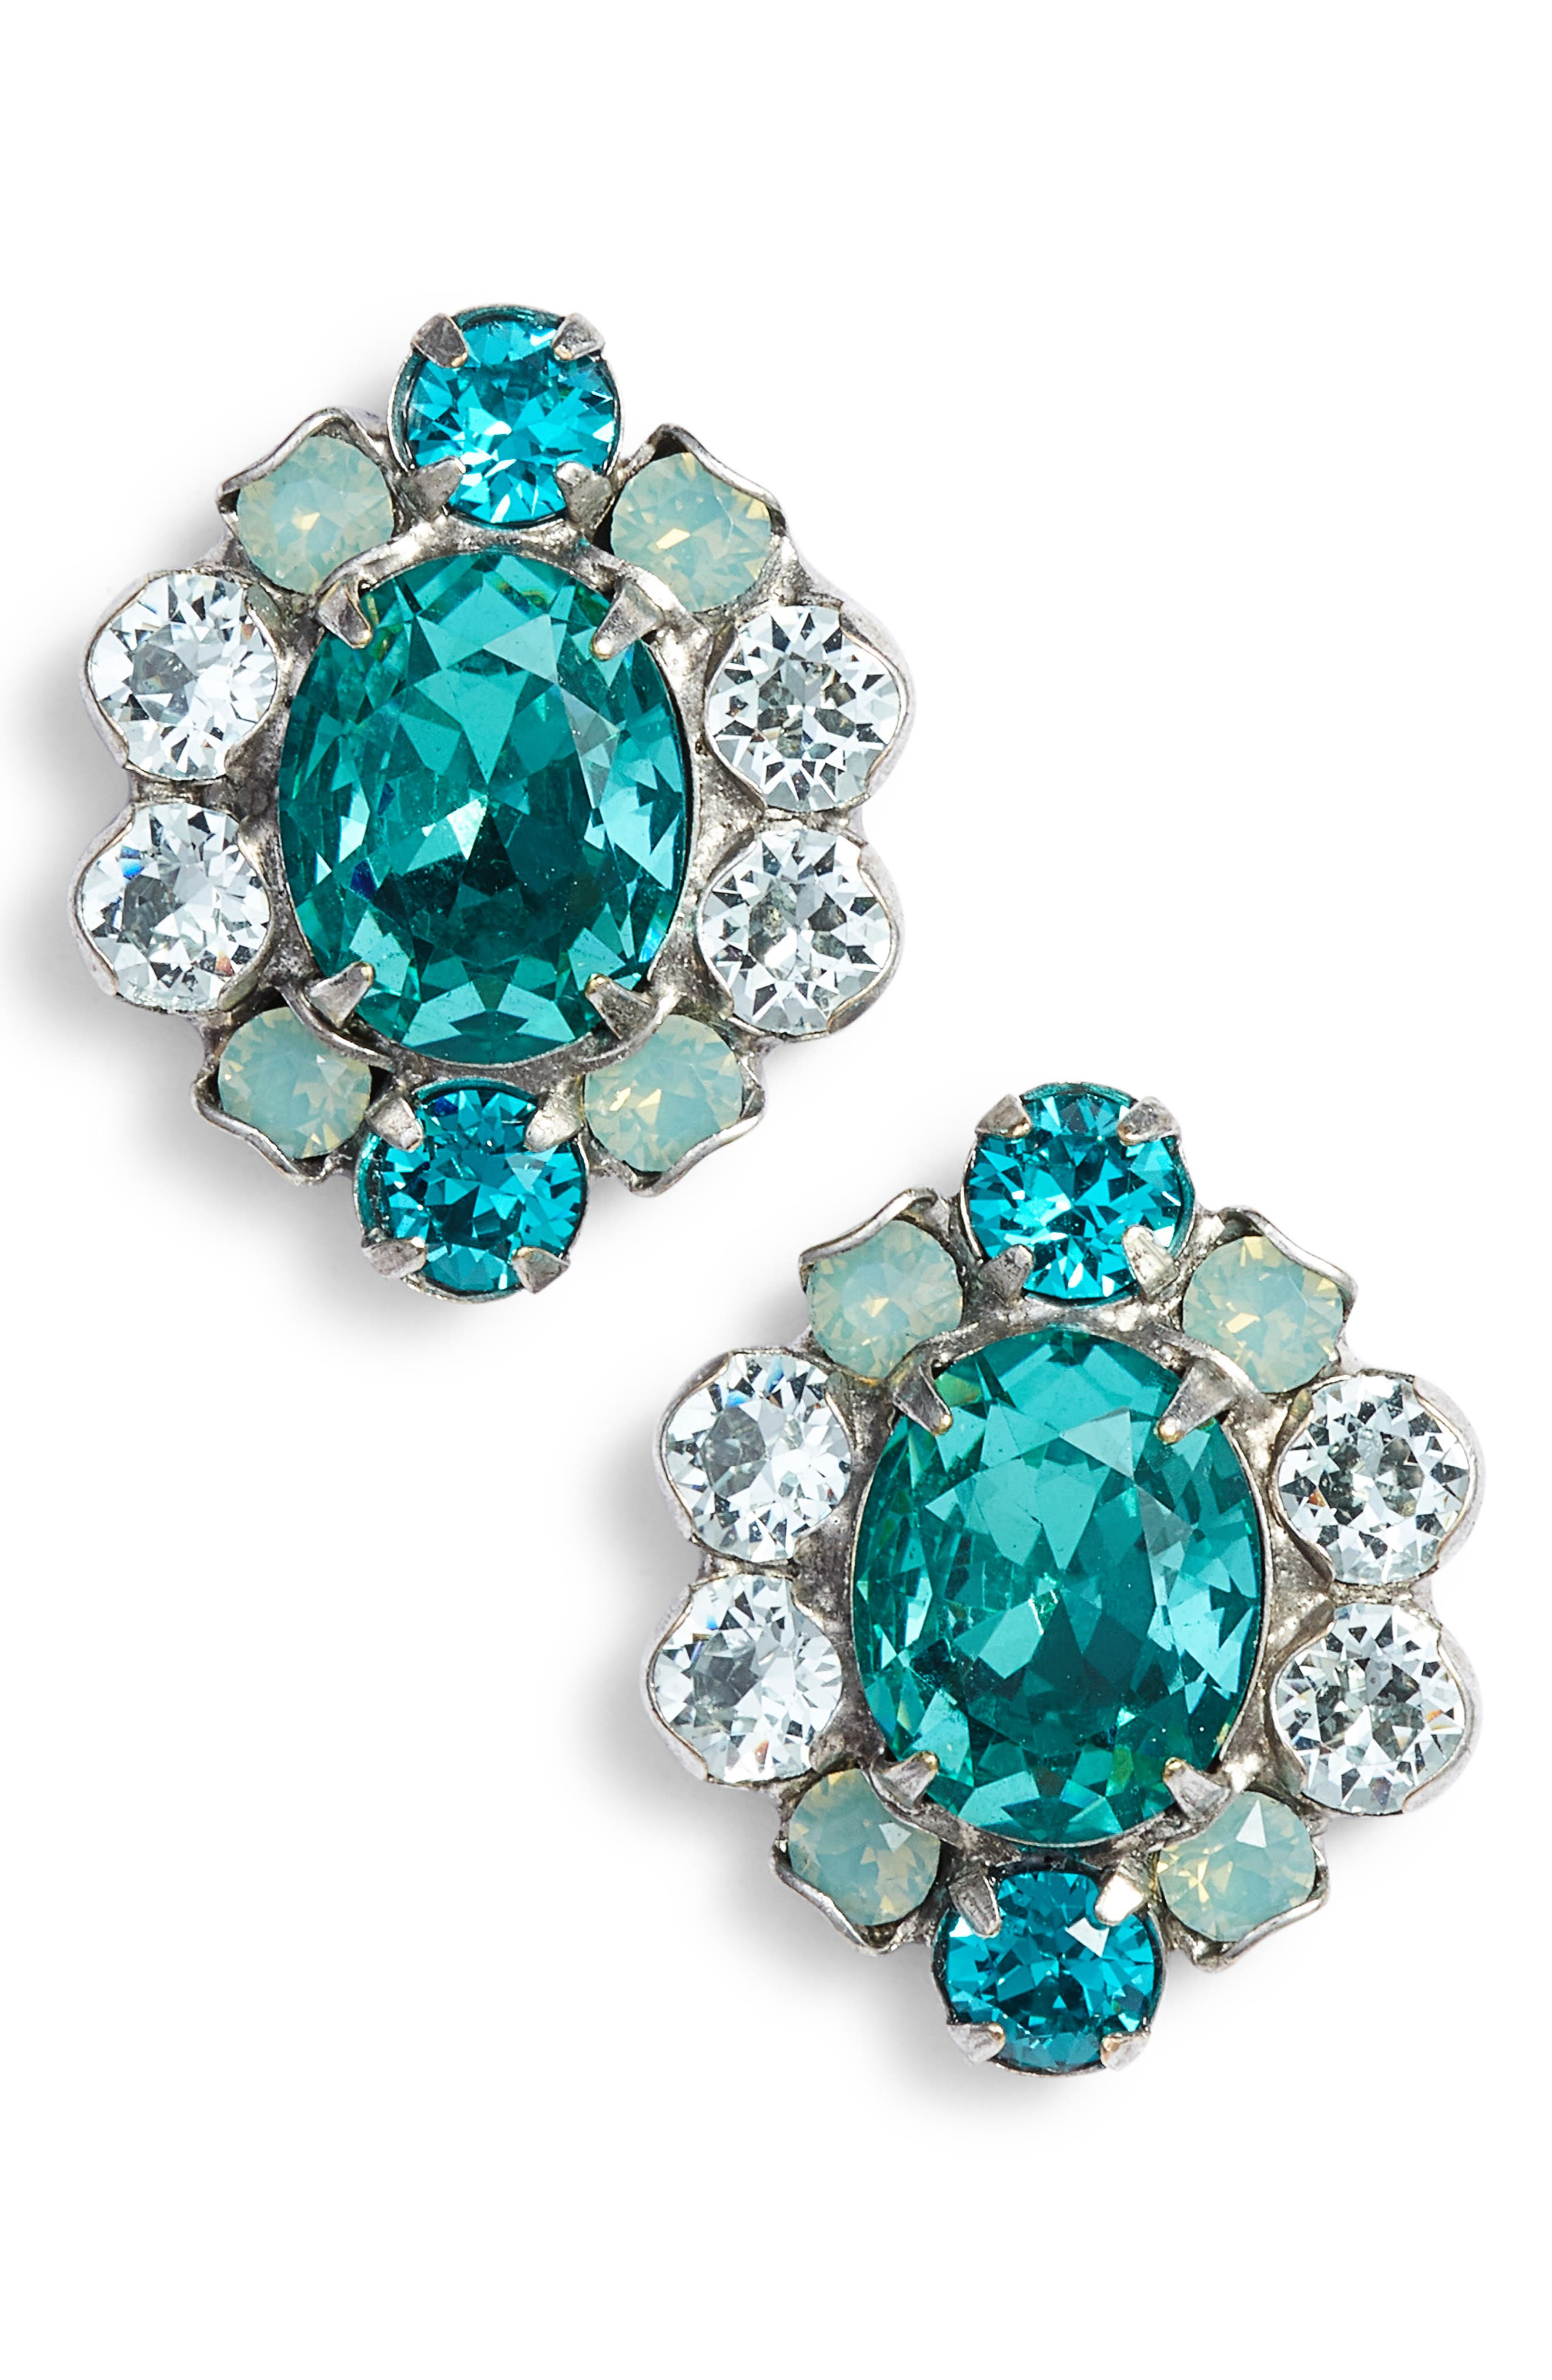 Sundrop Crystal Earrings,                             Main thumbnail 1, color,                             Blue-Green